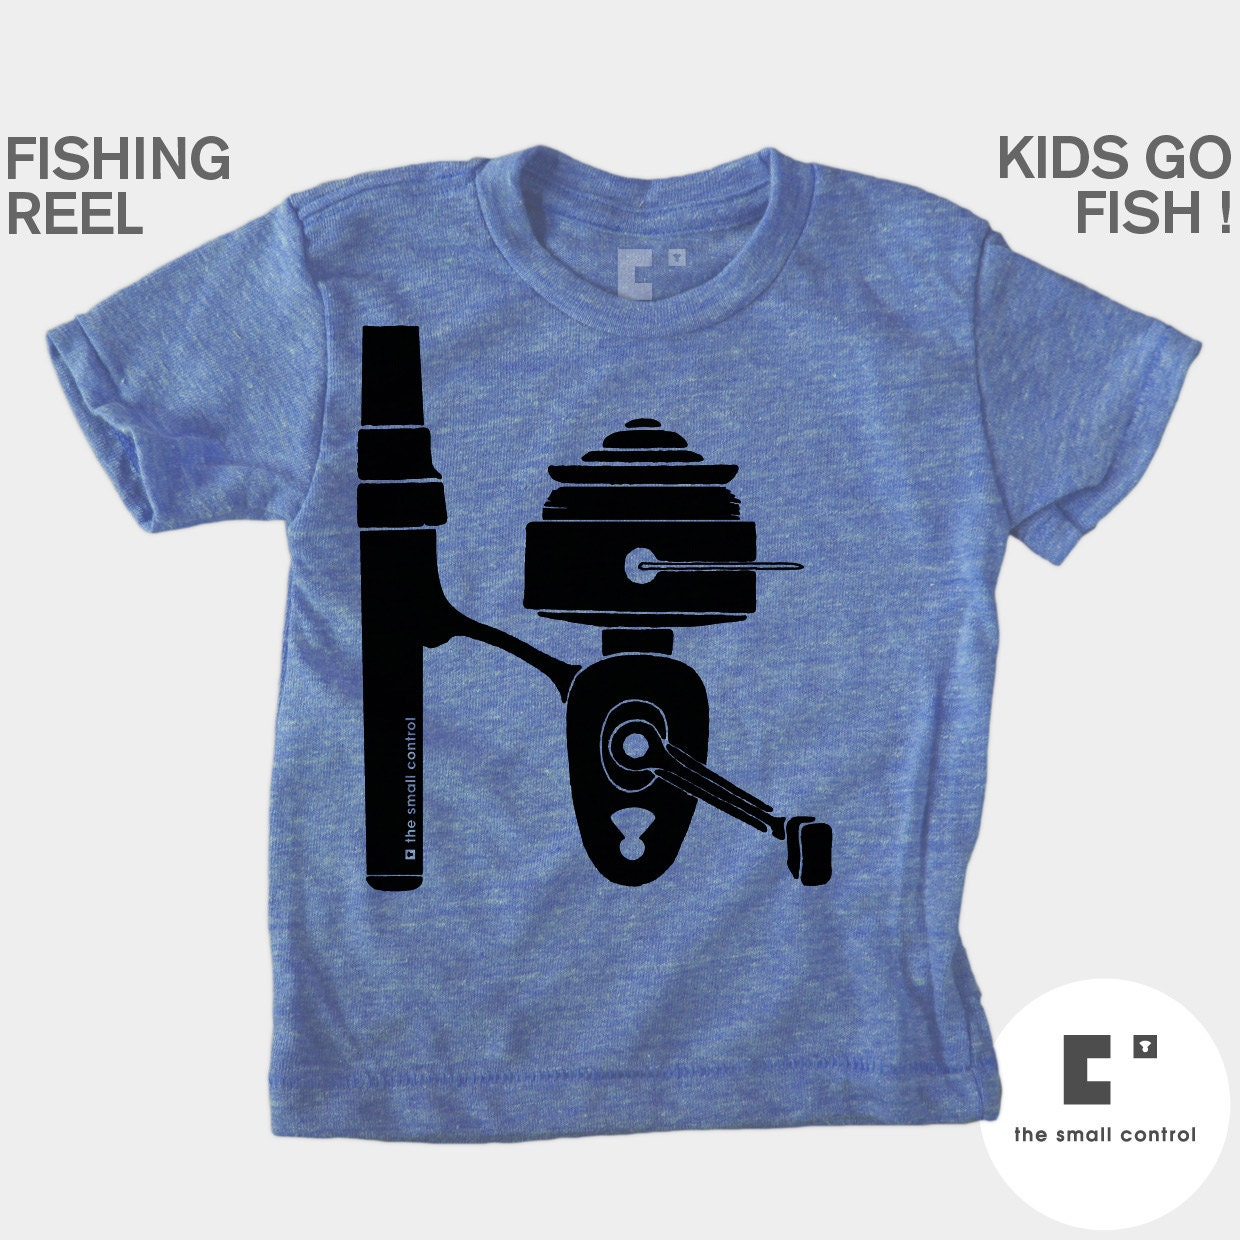 Girls Clothing Fishing Reel Kids Tshirt Girls Fishing Shirt